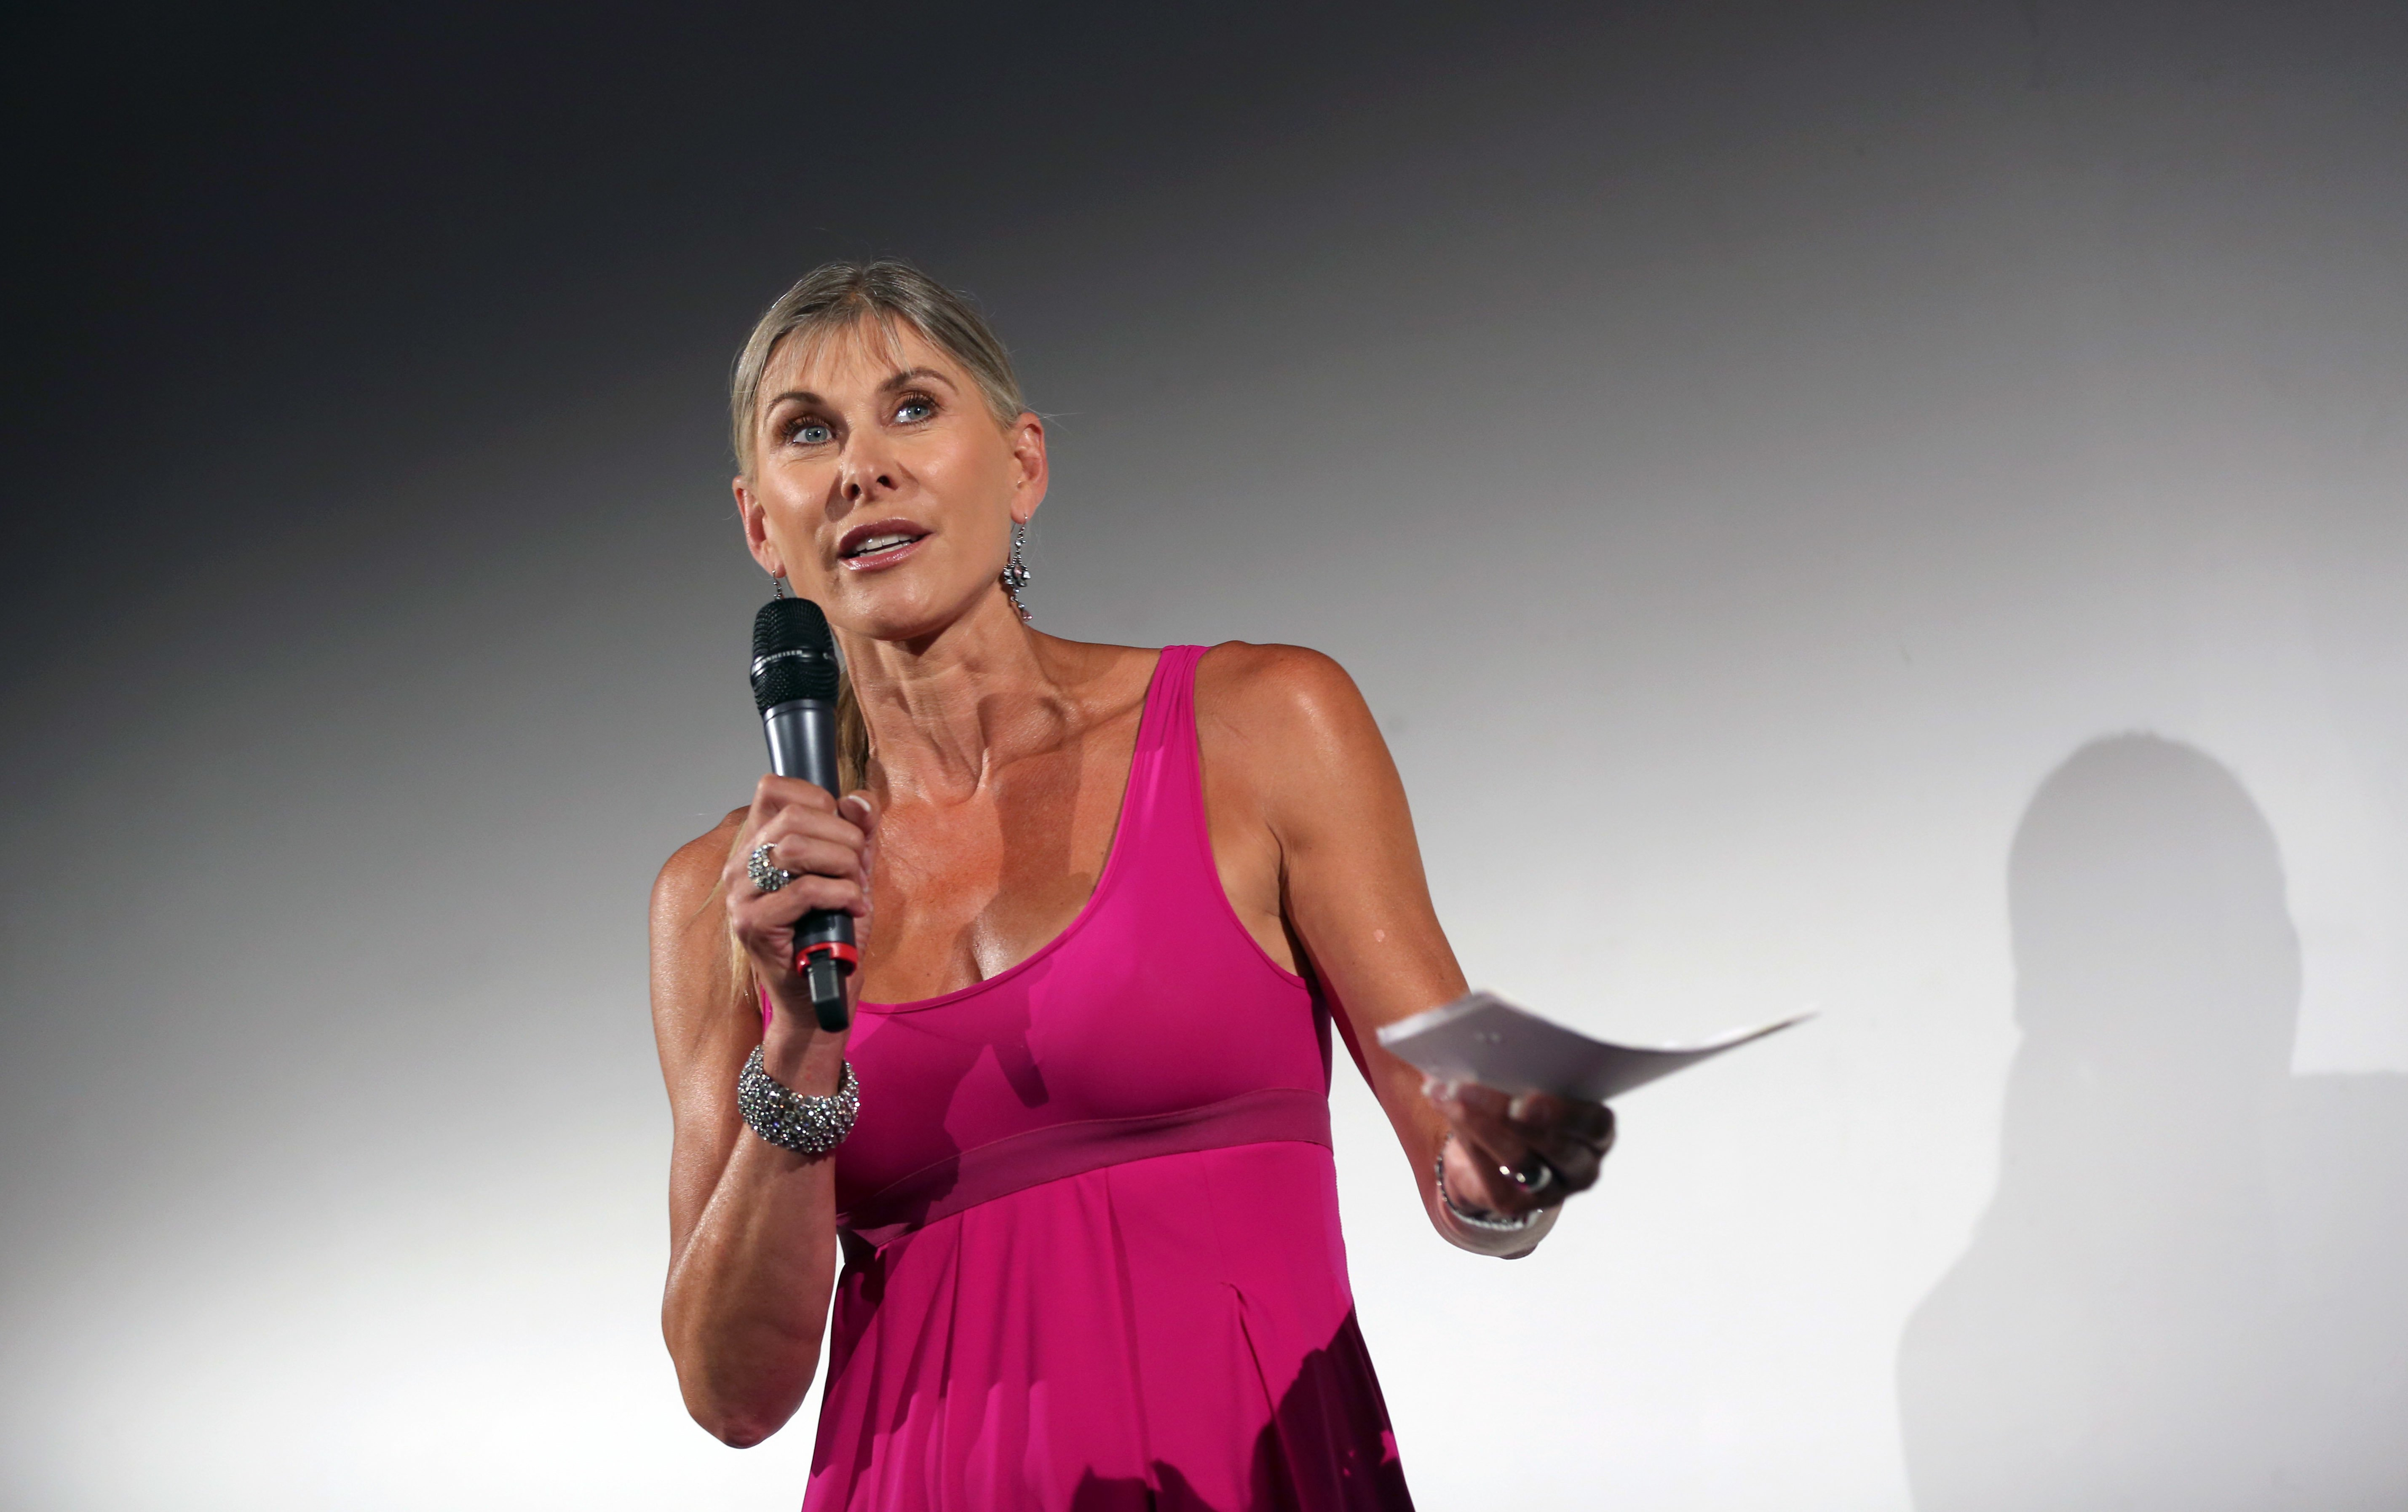 Olympic medallist Sharron Davies comes under fire after comparing drag queens to blackface